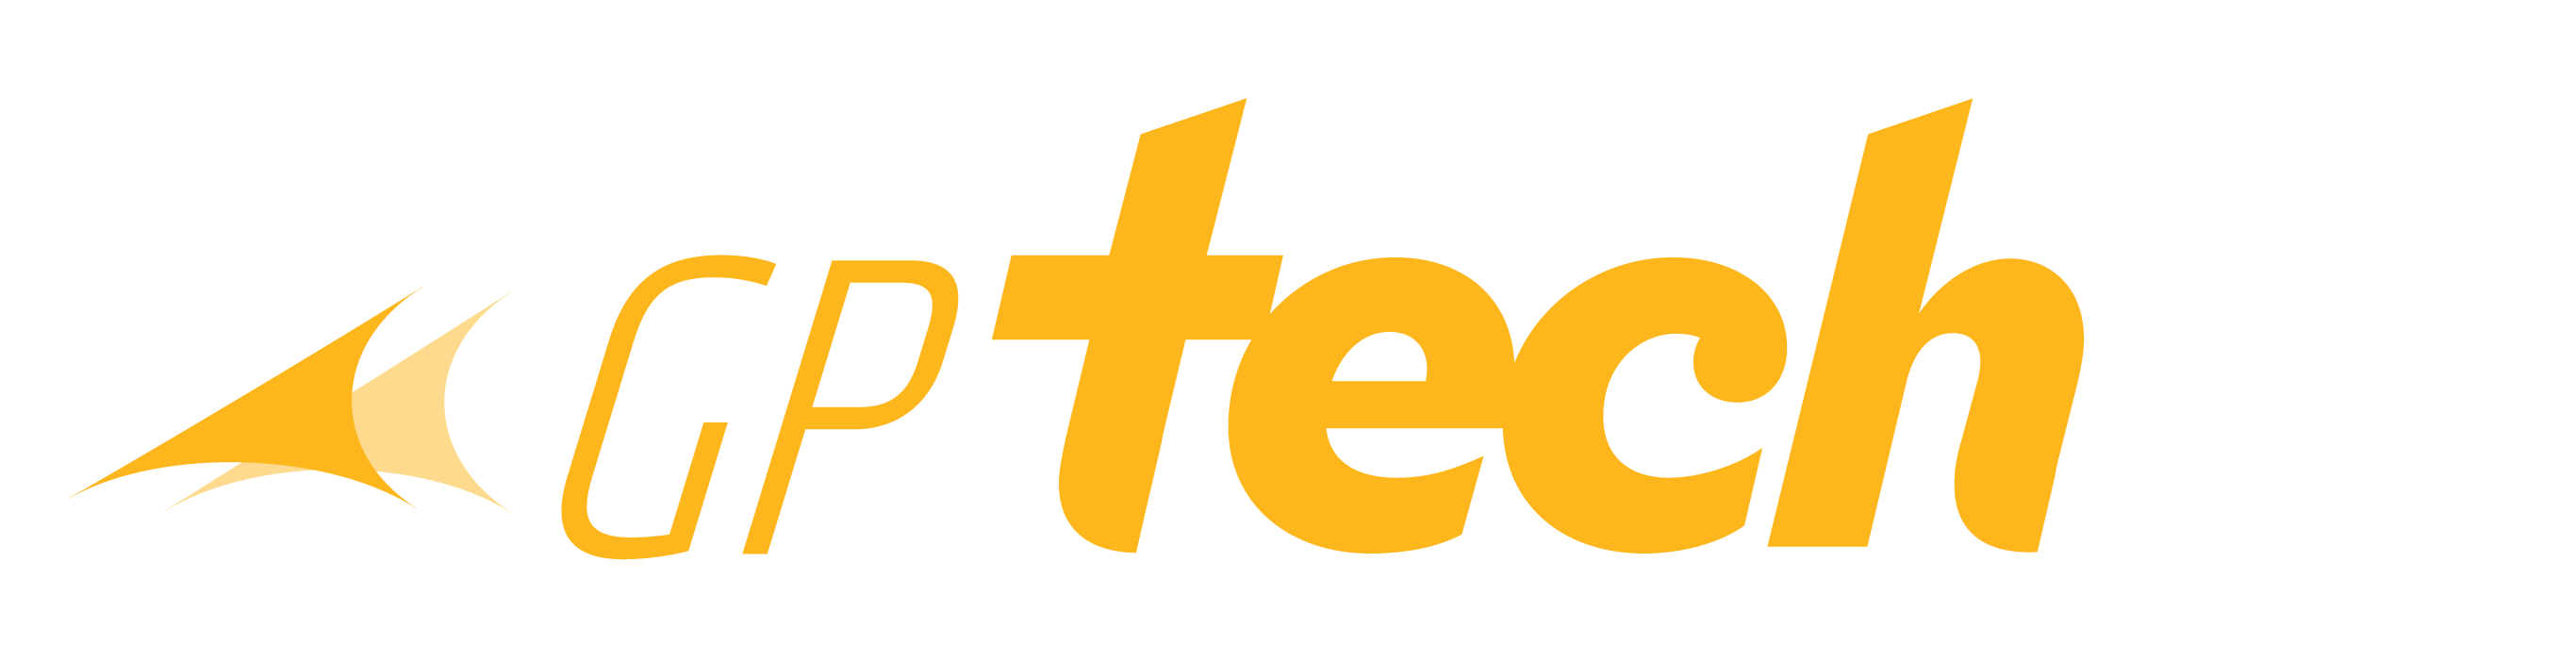 GPTech-No Year Logos_yellow.png